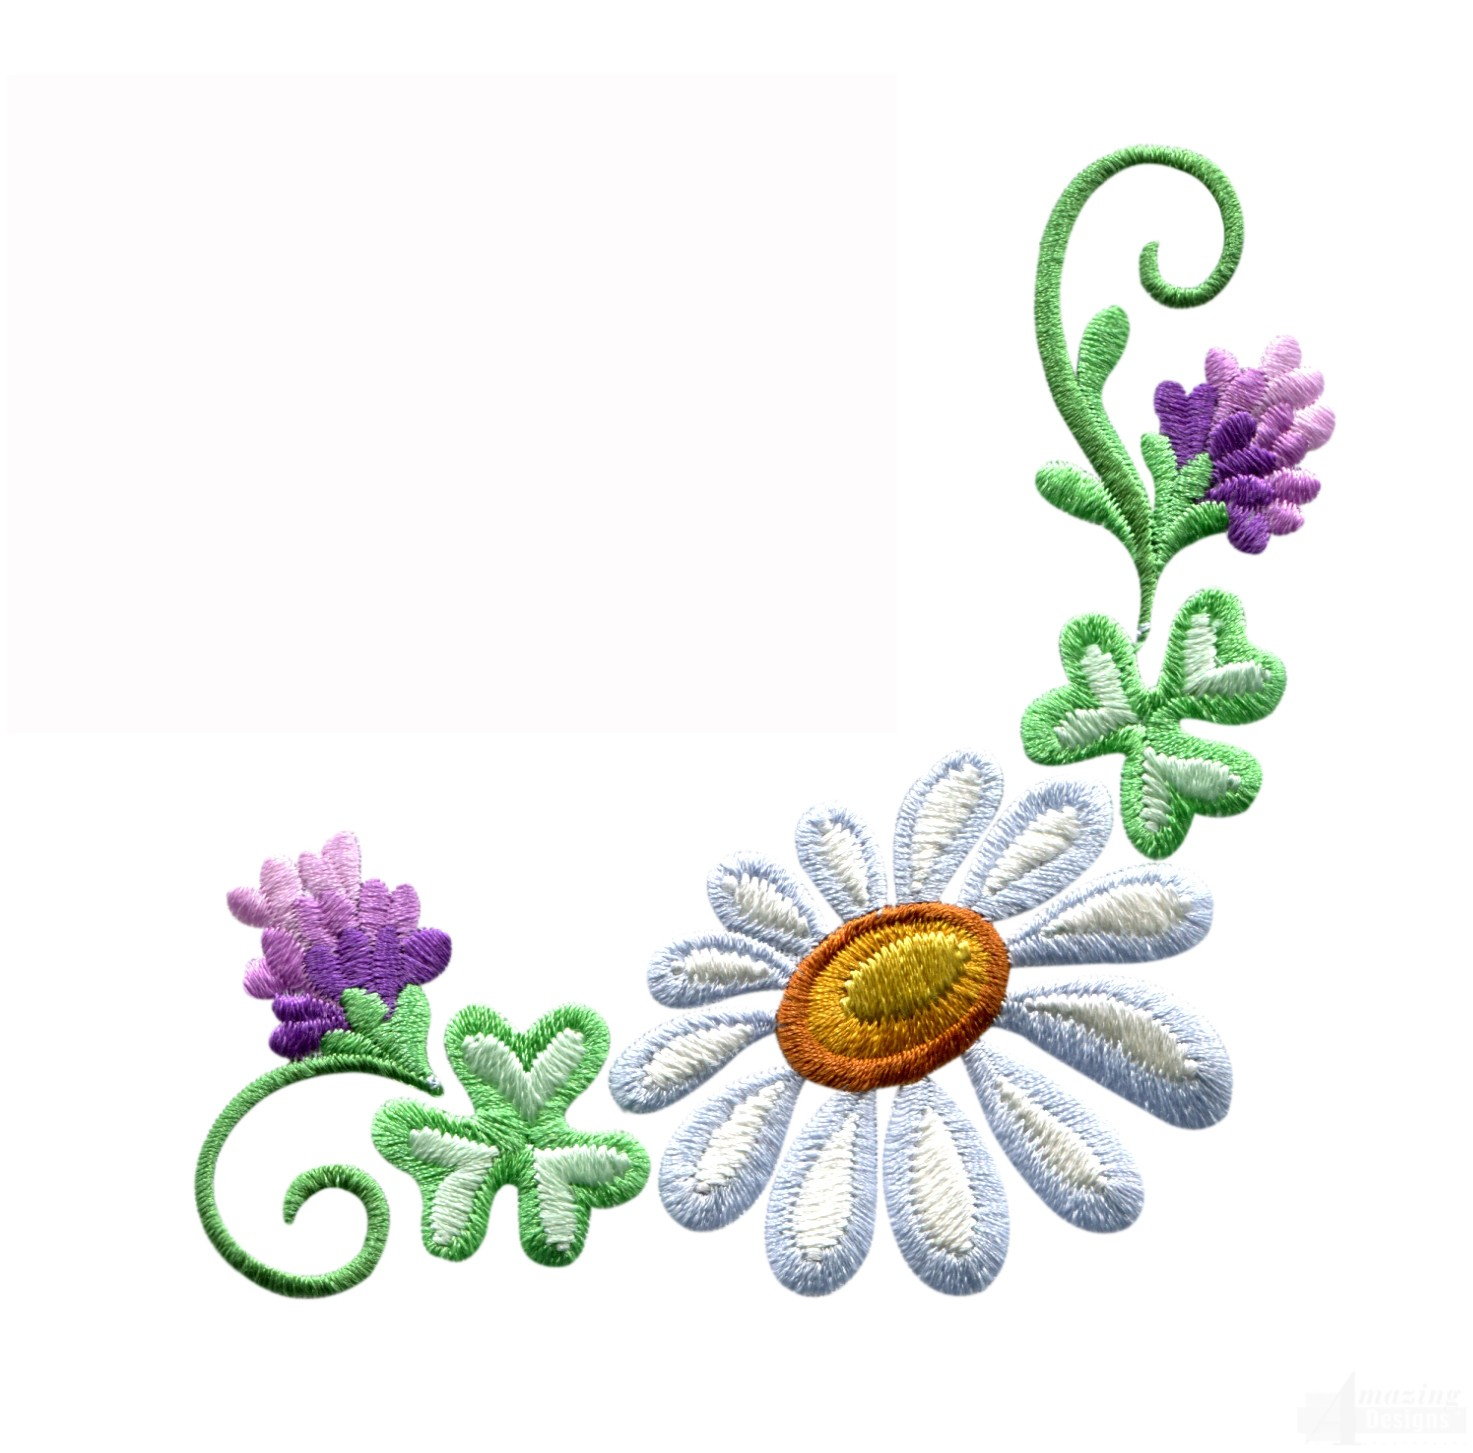 Daisy Floral Border 3 Embroidery Design